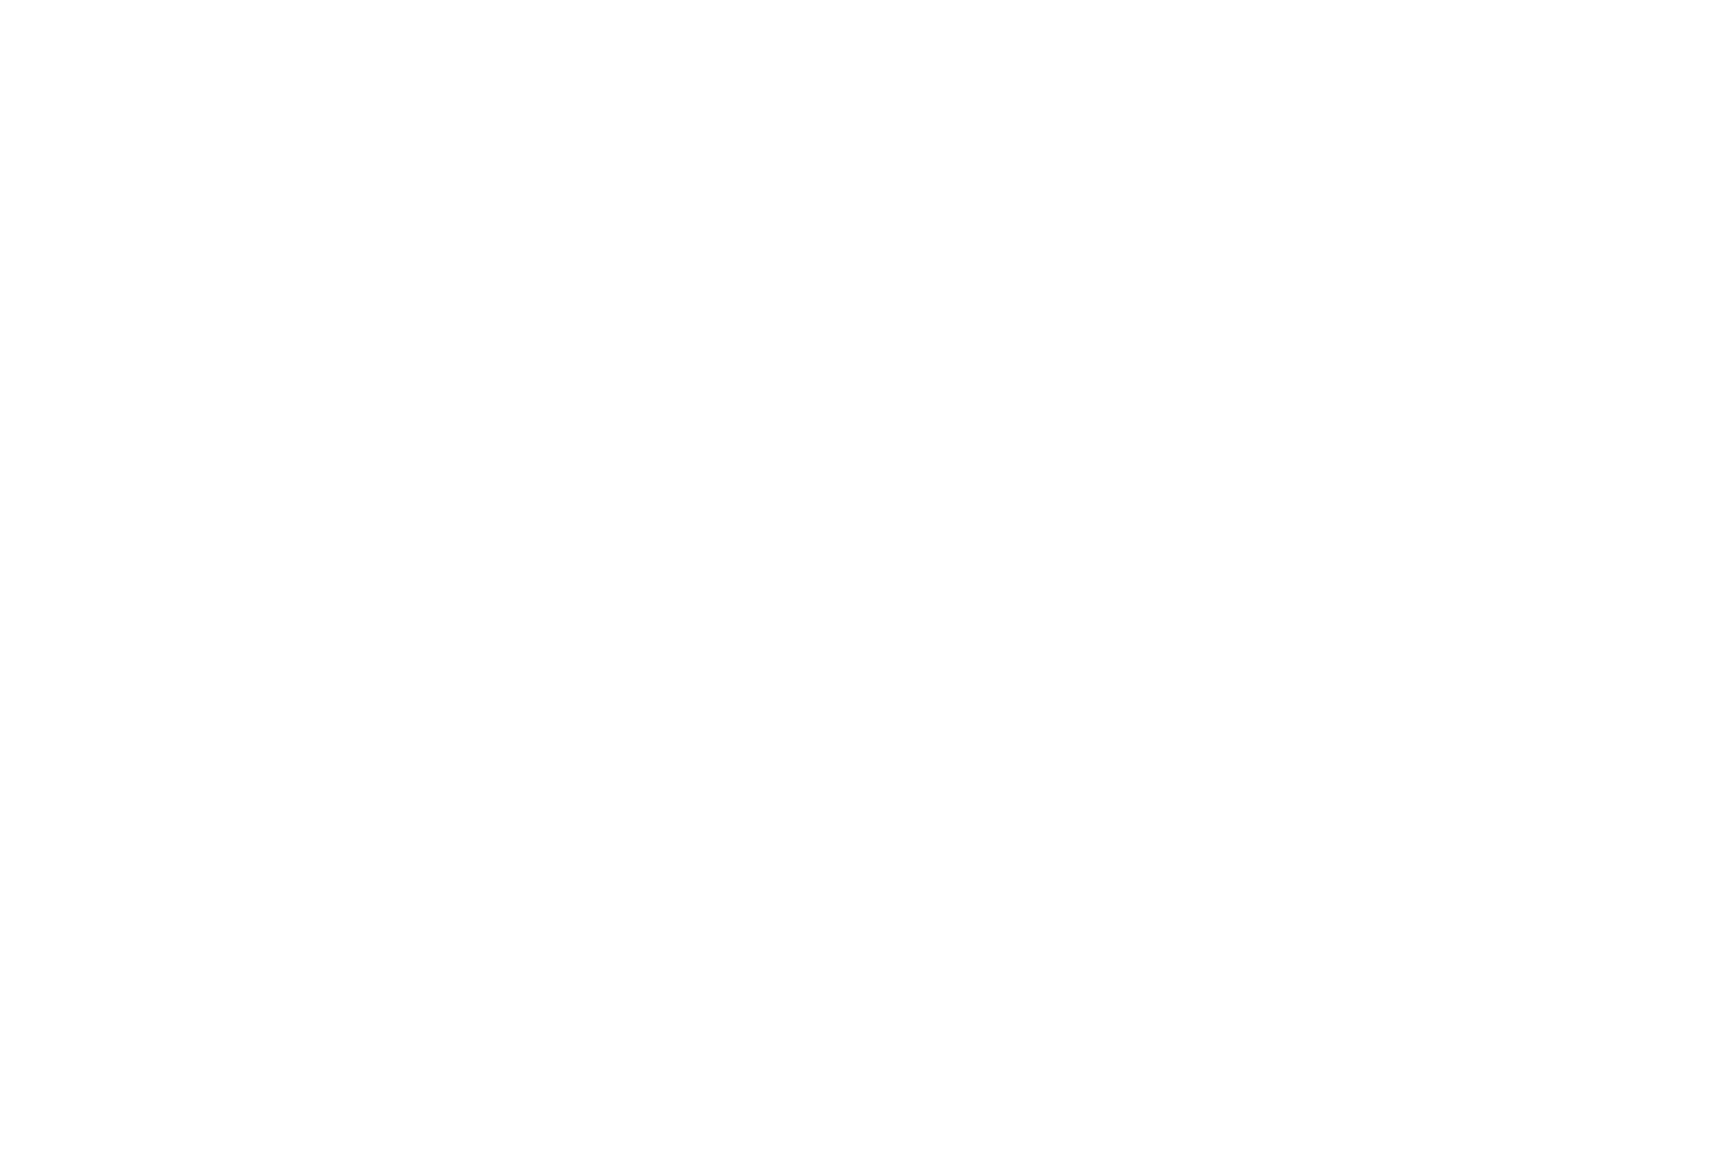 OFFICIAL SELECTION - International Film Festival of Andaman and Nicobar - 2020